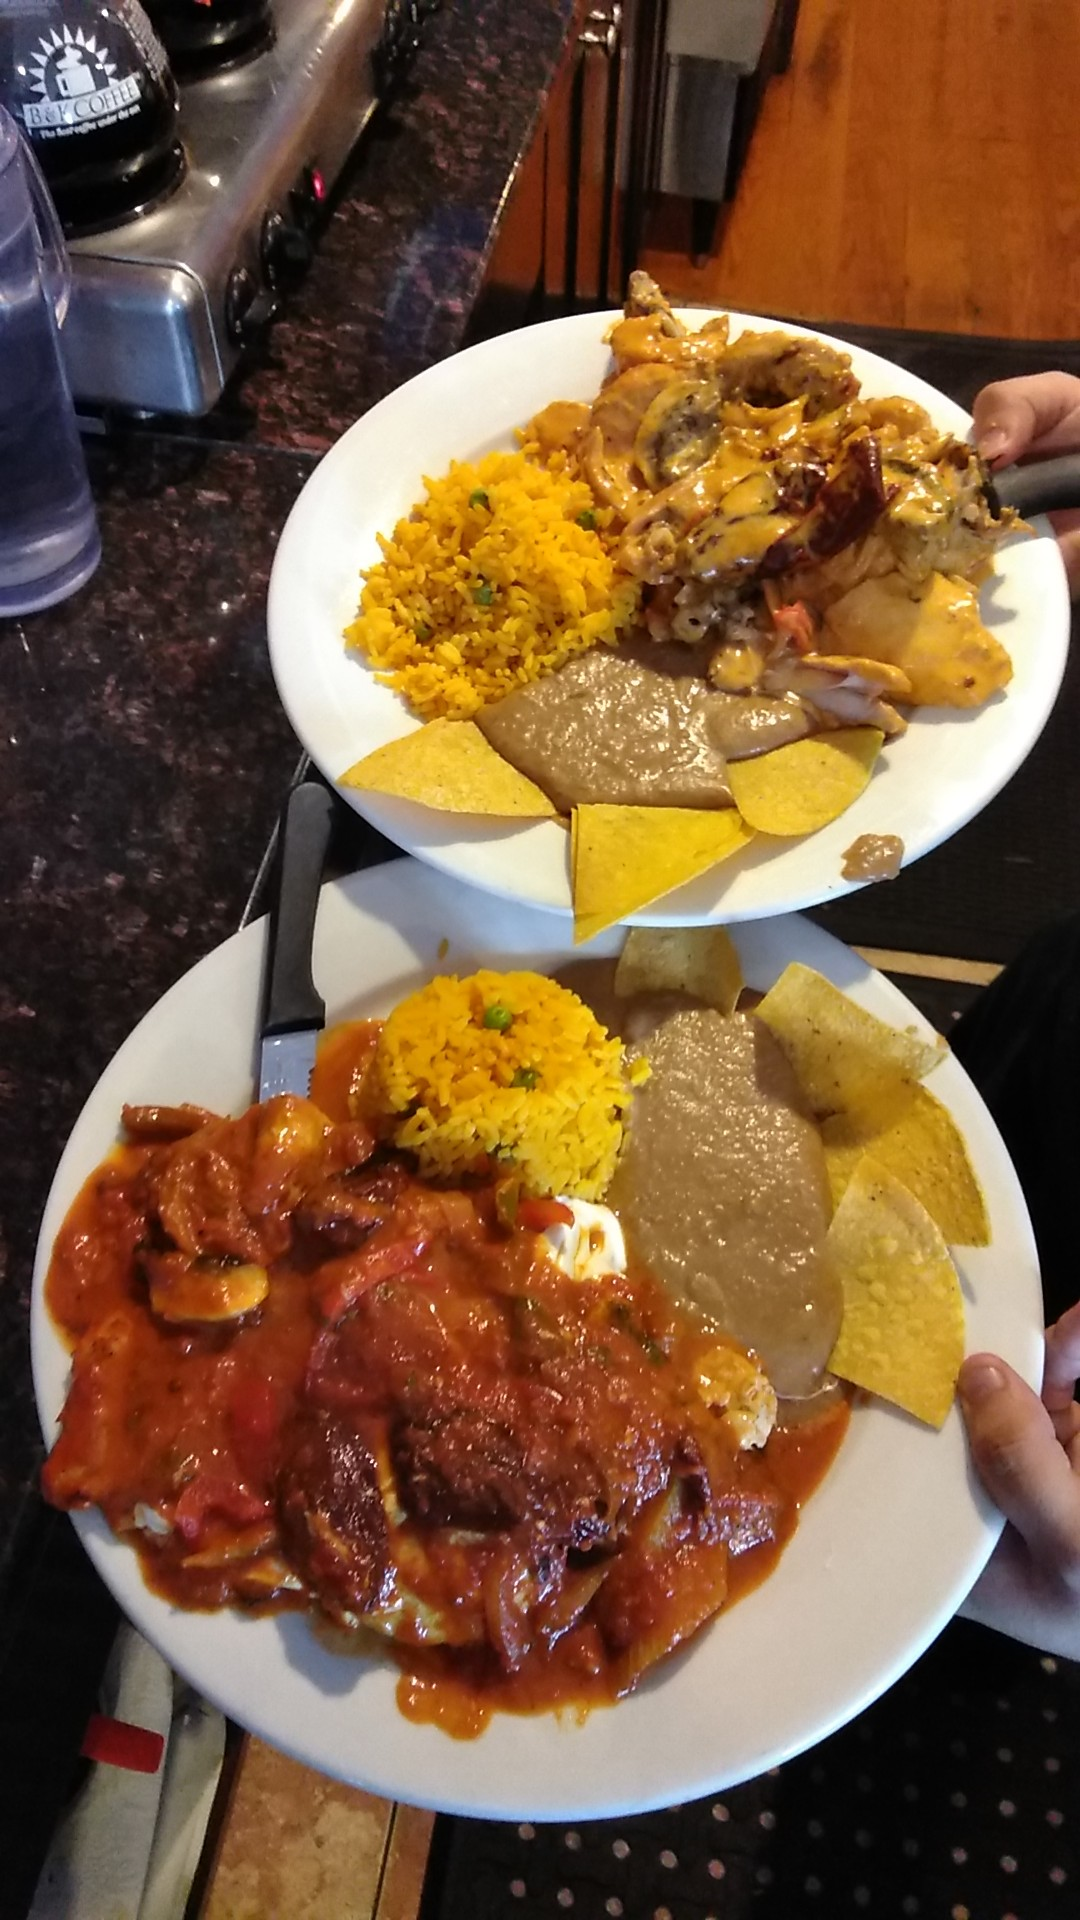 Two dishes with refried beans, rice and tortilla chips.